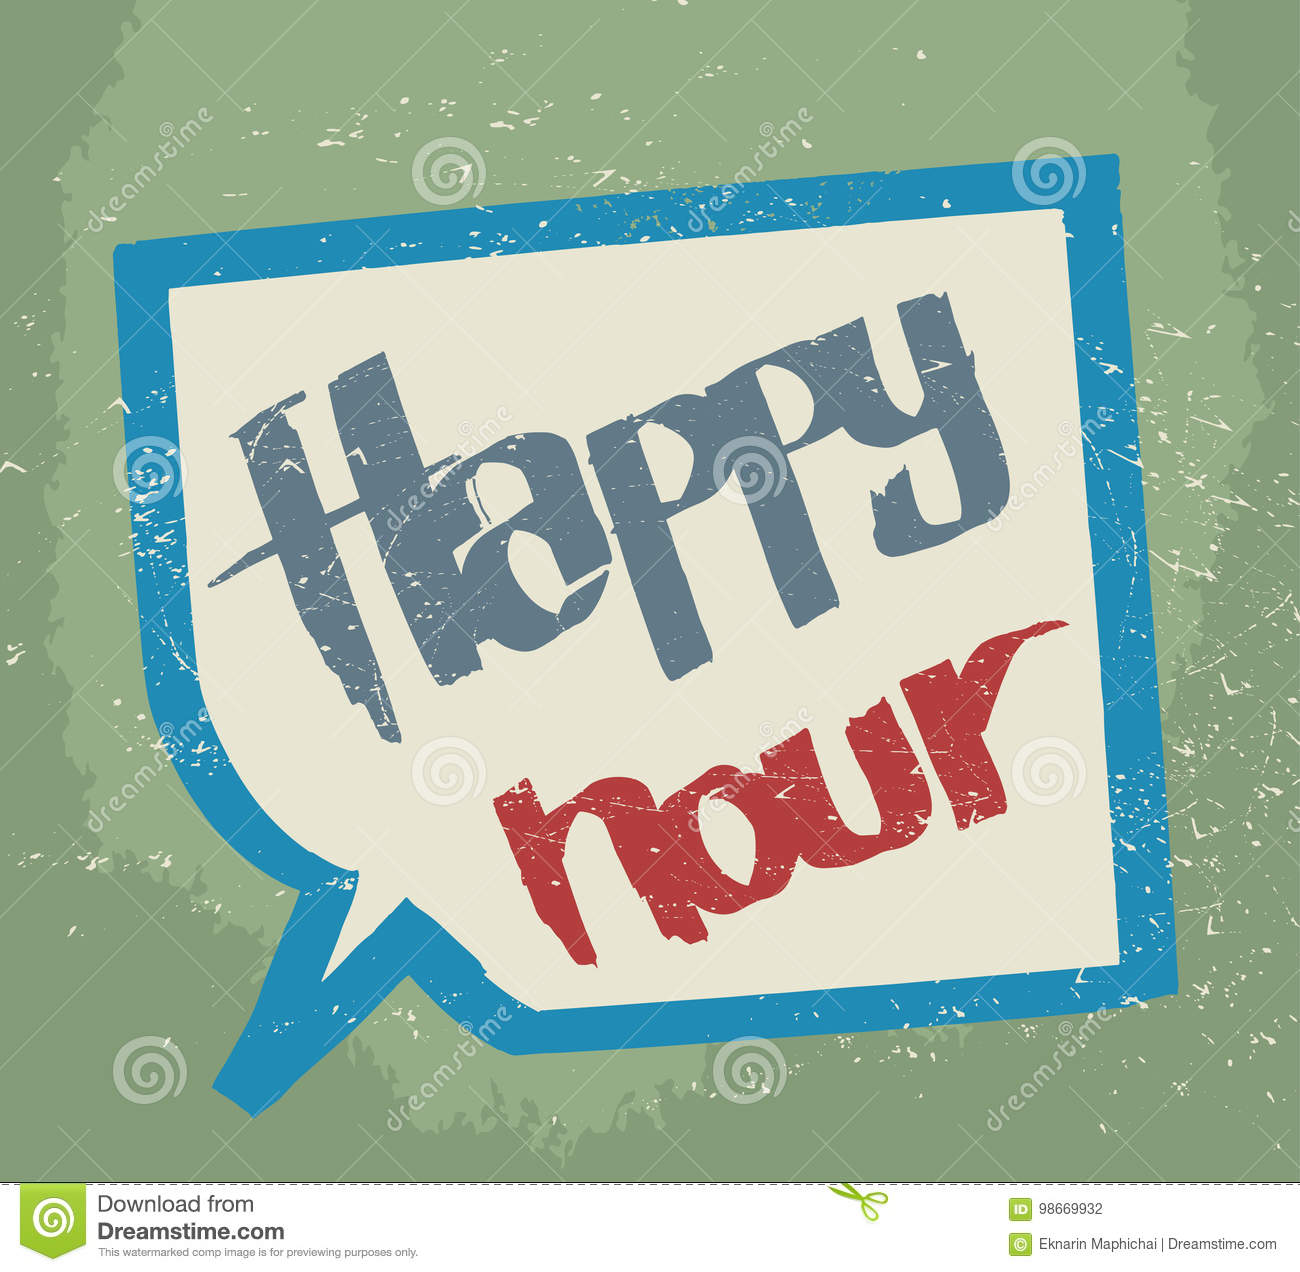 Happyhour Cartoons, Illustrations & Vector Stock Images